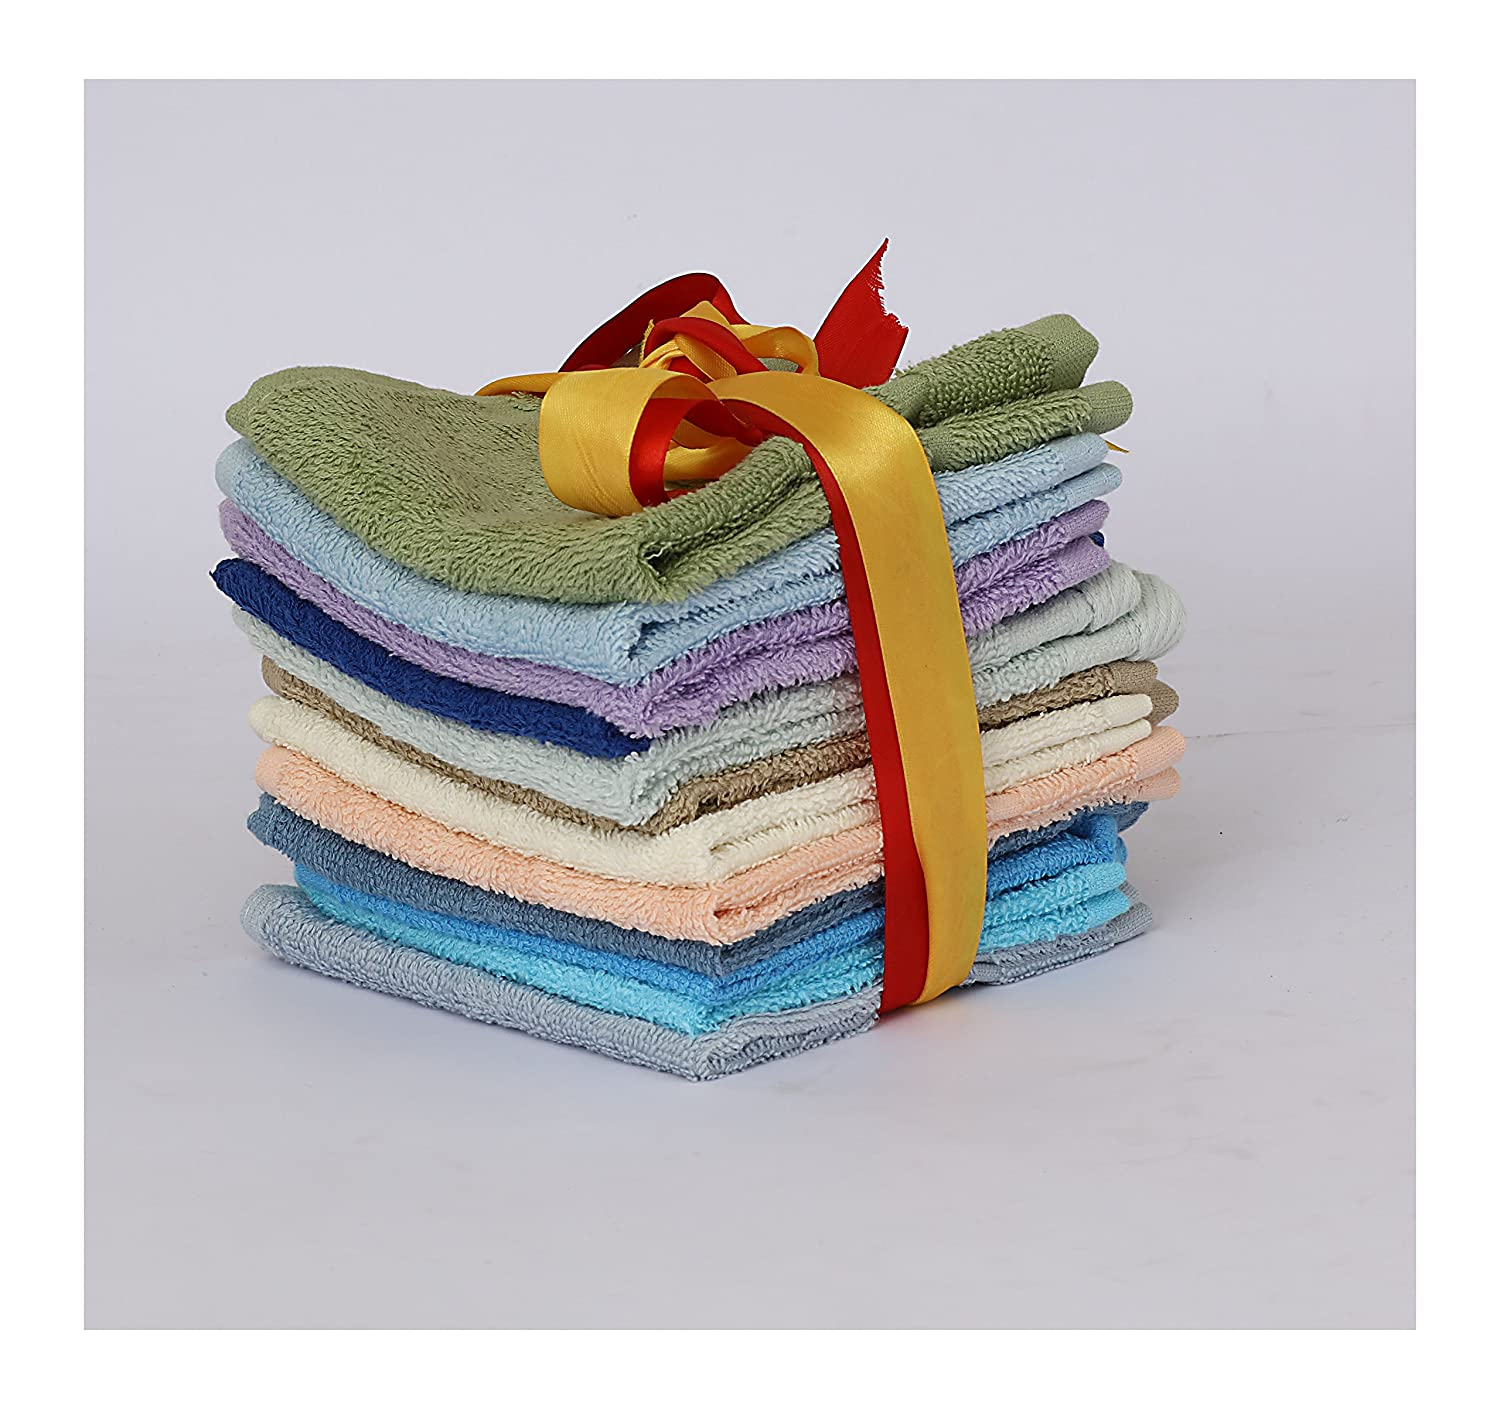 12 X 12 Solutions Washcloth 12 Pack Inc Active50 Solutions 1-E-A3-12 12 X 12 100 Percent Extra Soft and Absorbent Ring 100/% Cotton Assorted Colors